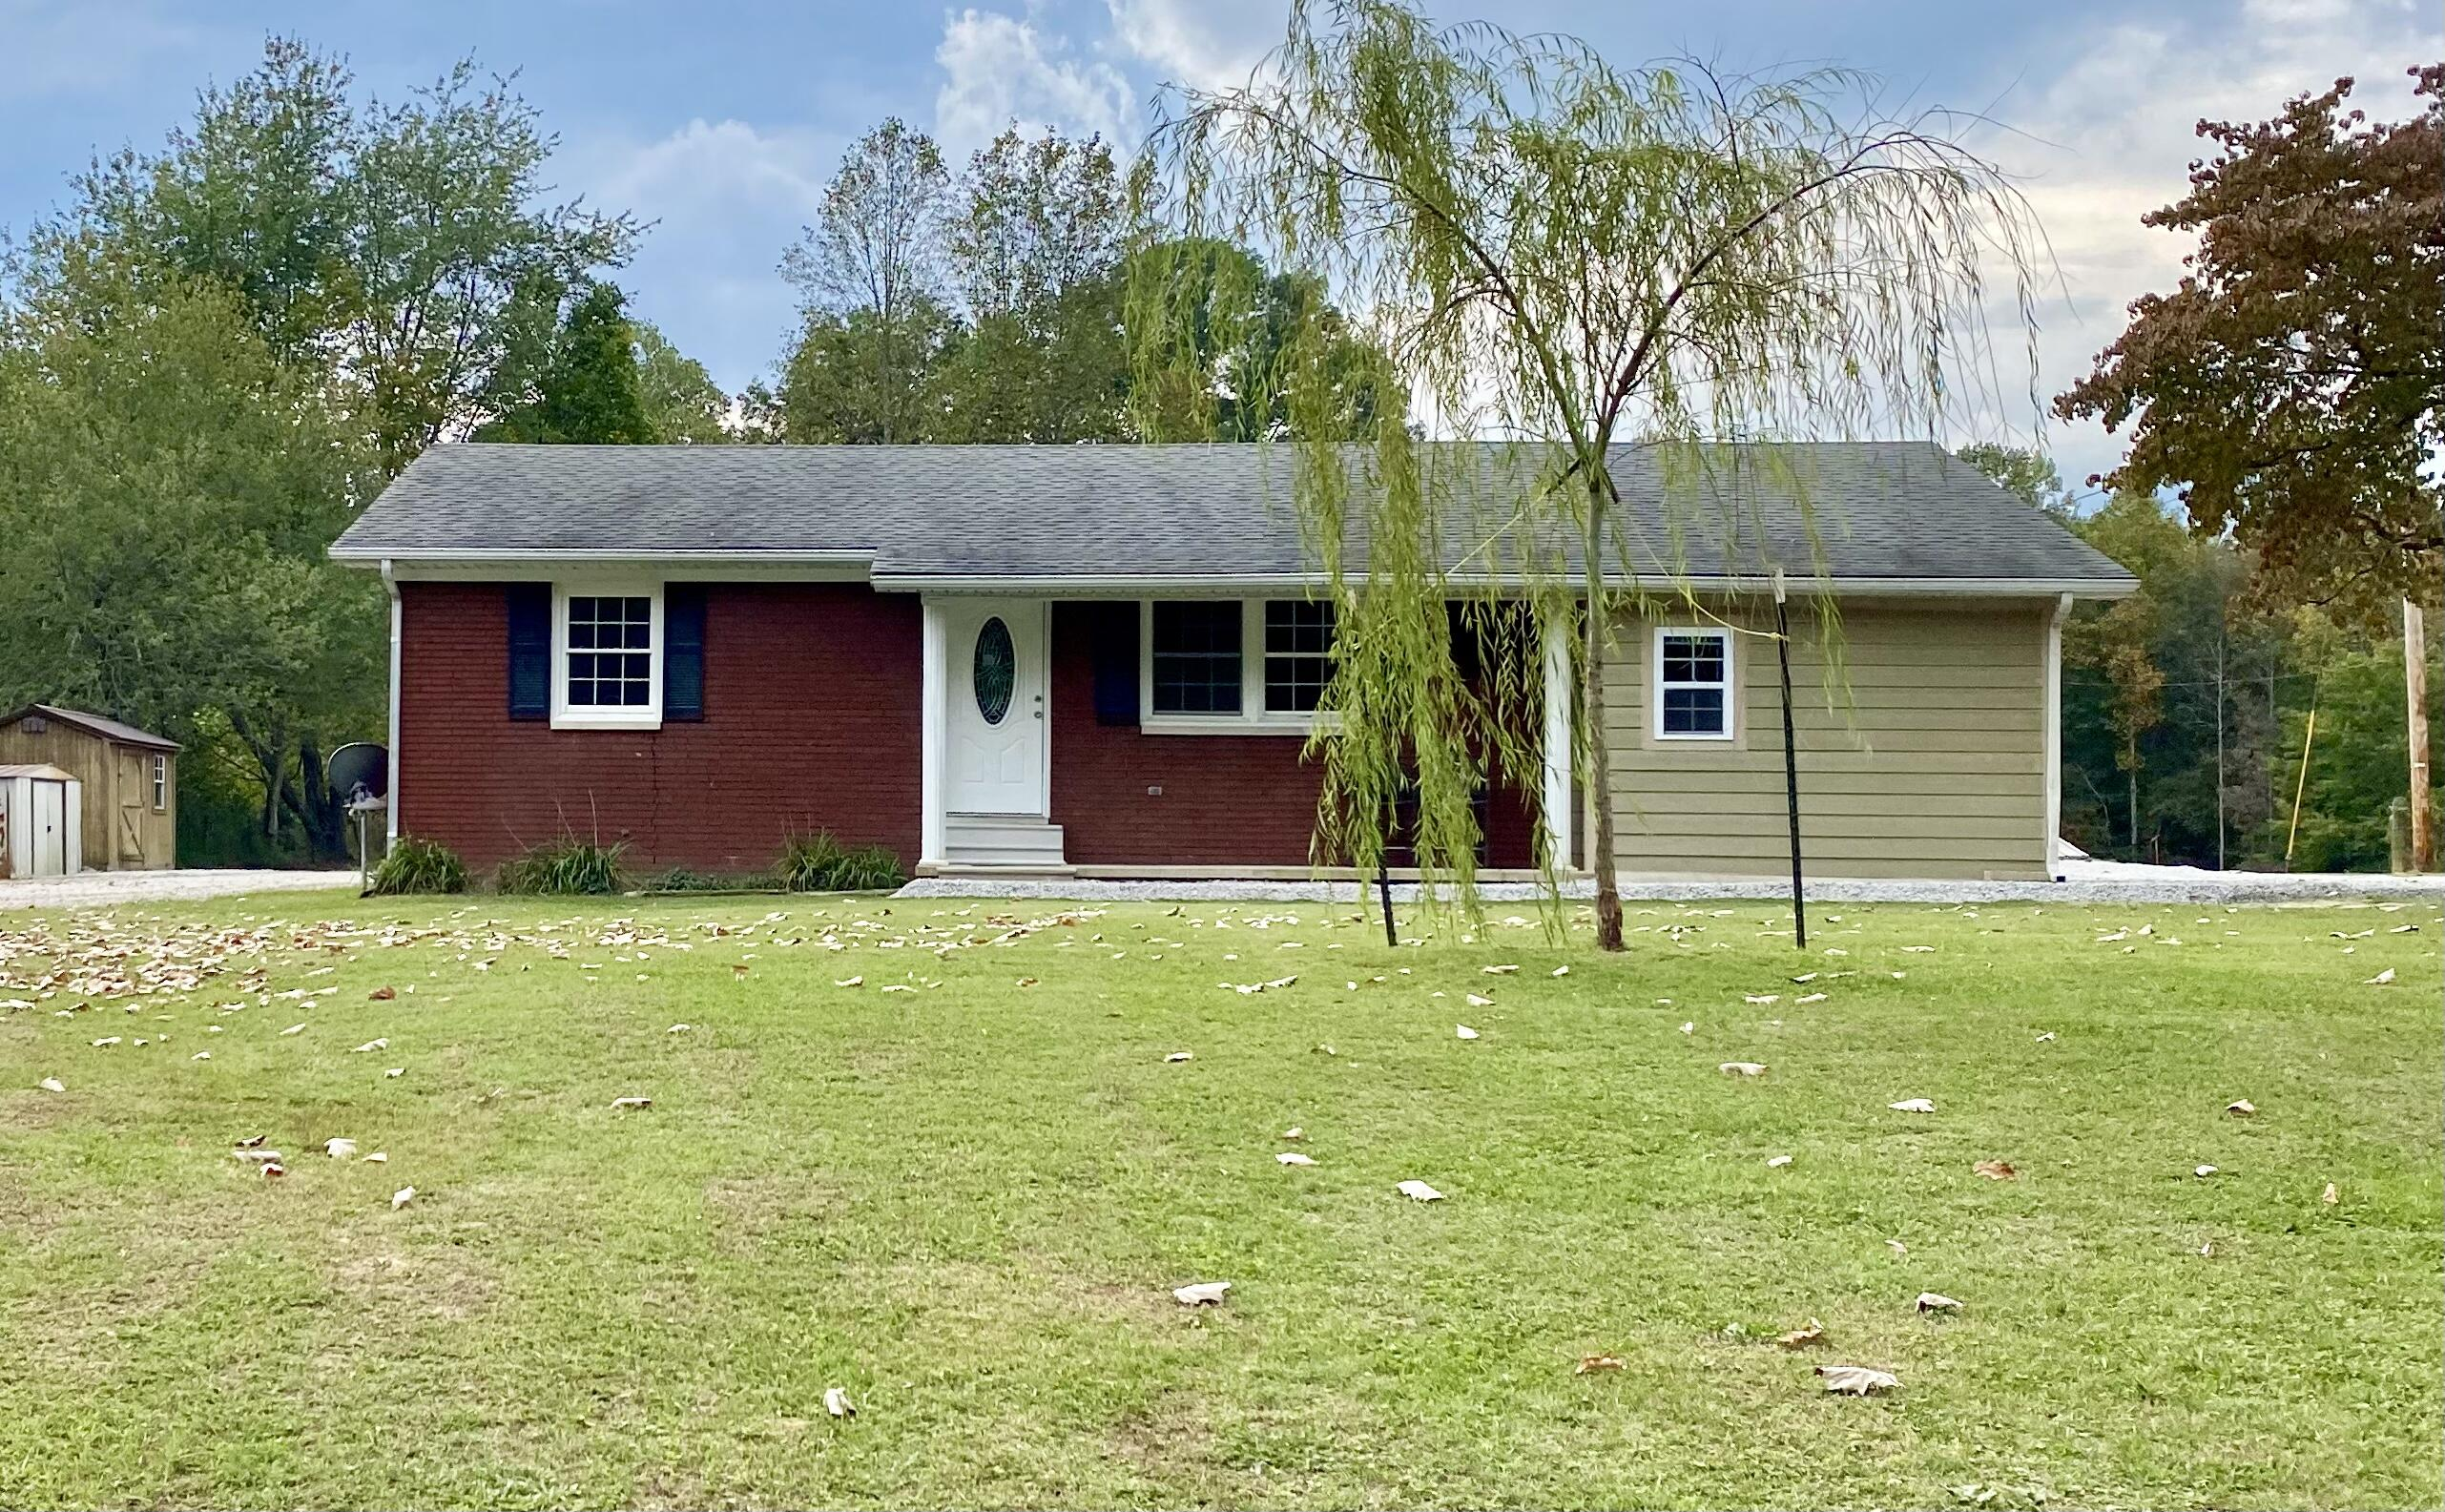 2985 KY 1729 A, Russell Springs, KY 42642